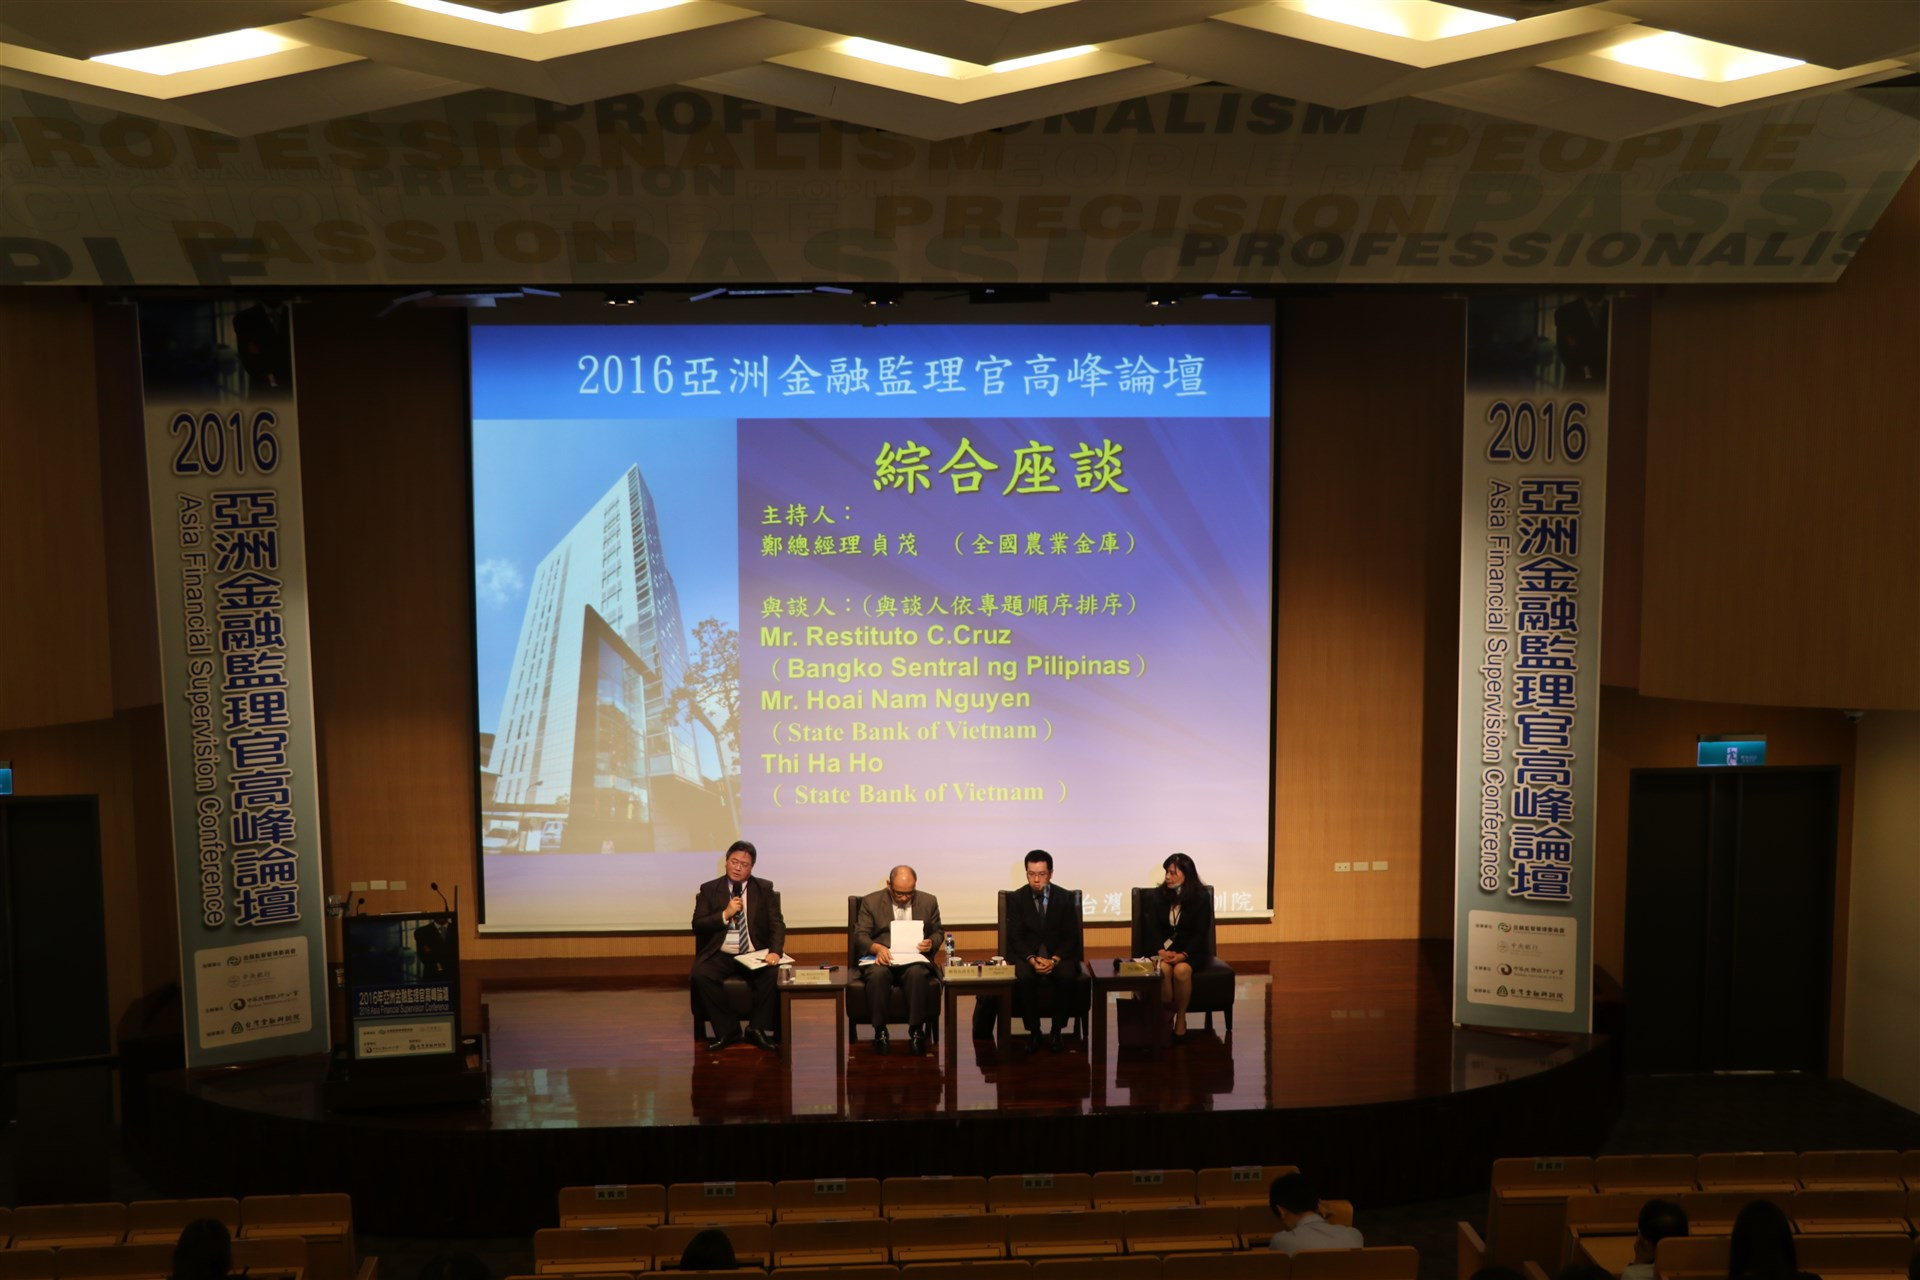 2016/10/04_2016 Asia Financial Supervision Conference